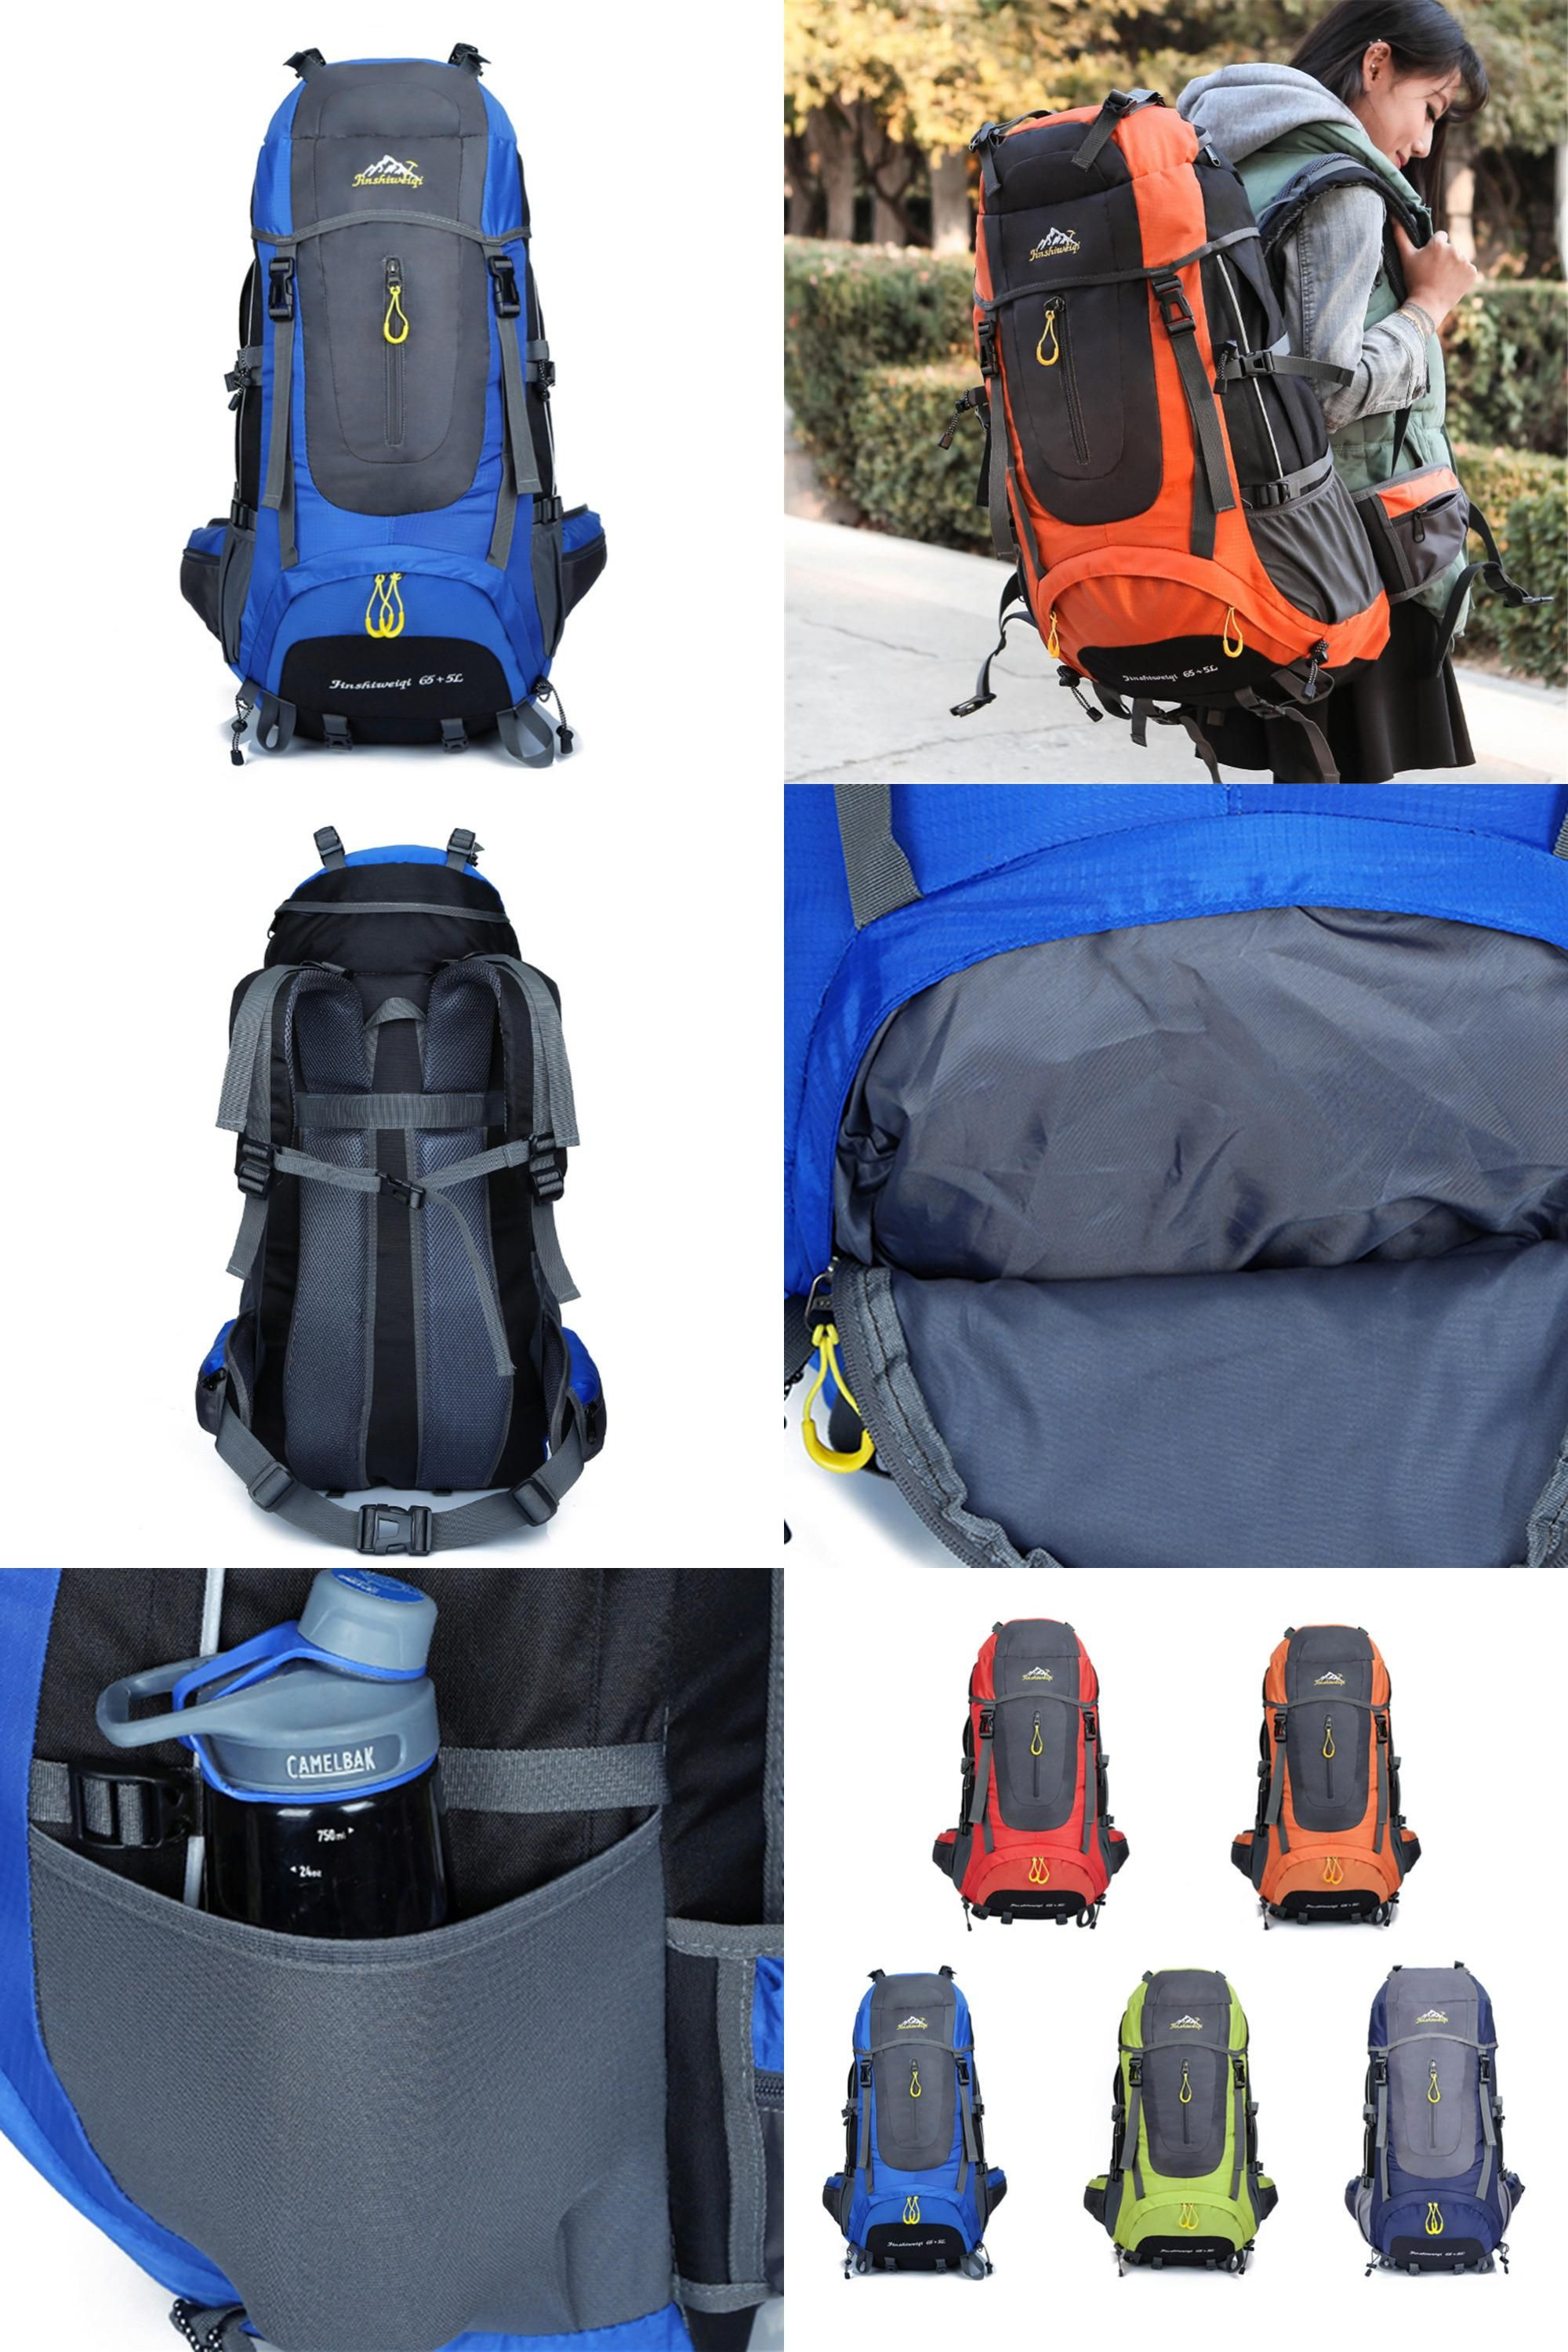 Visit to Buy] 70L 5 colors large Mountaineering backpack outdoor ...